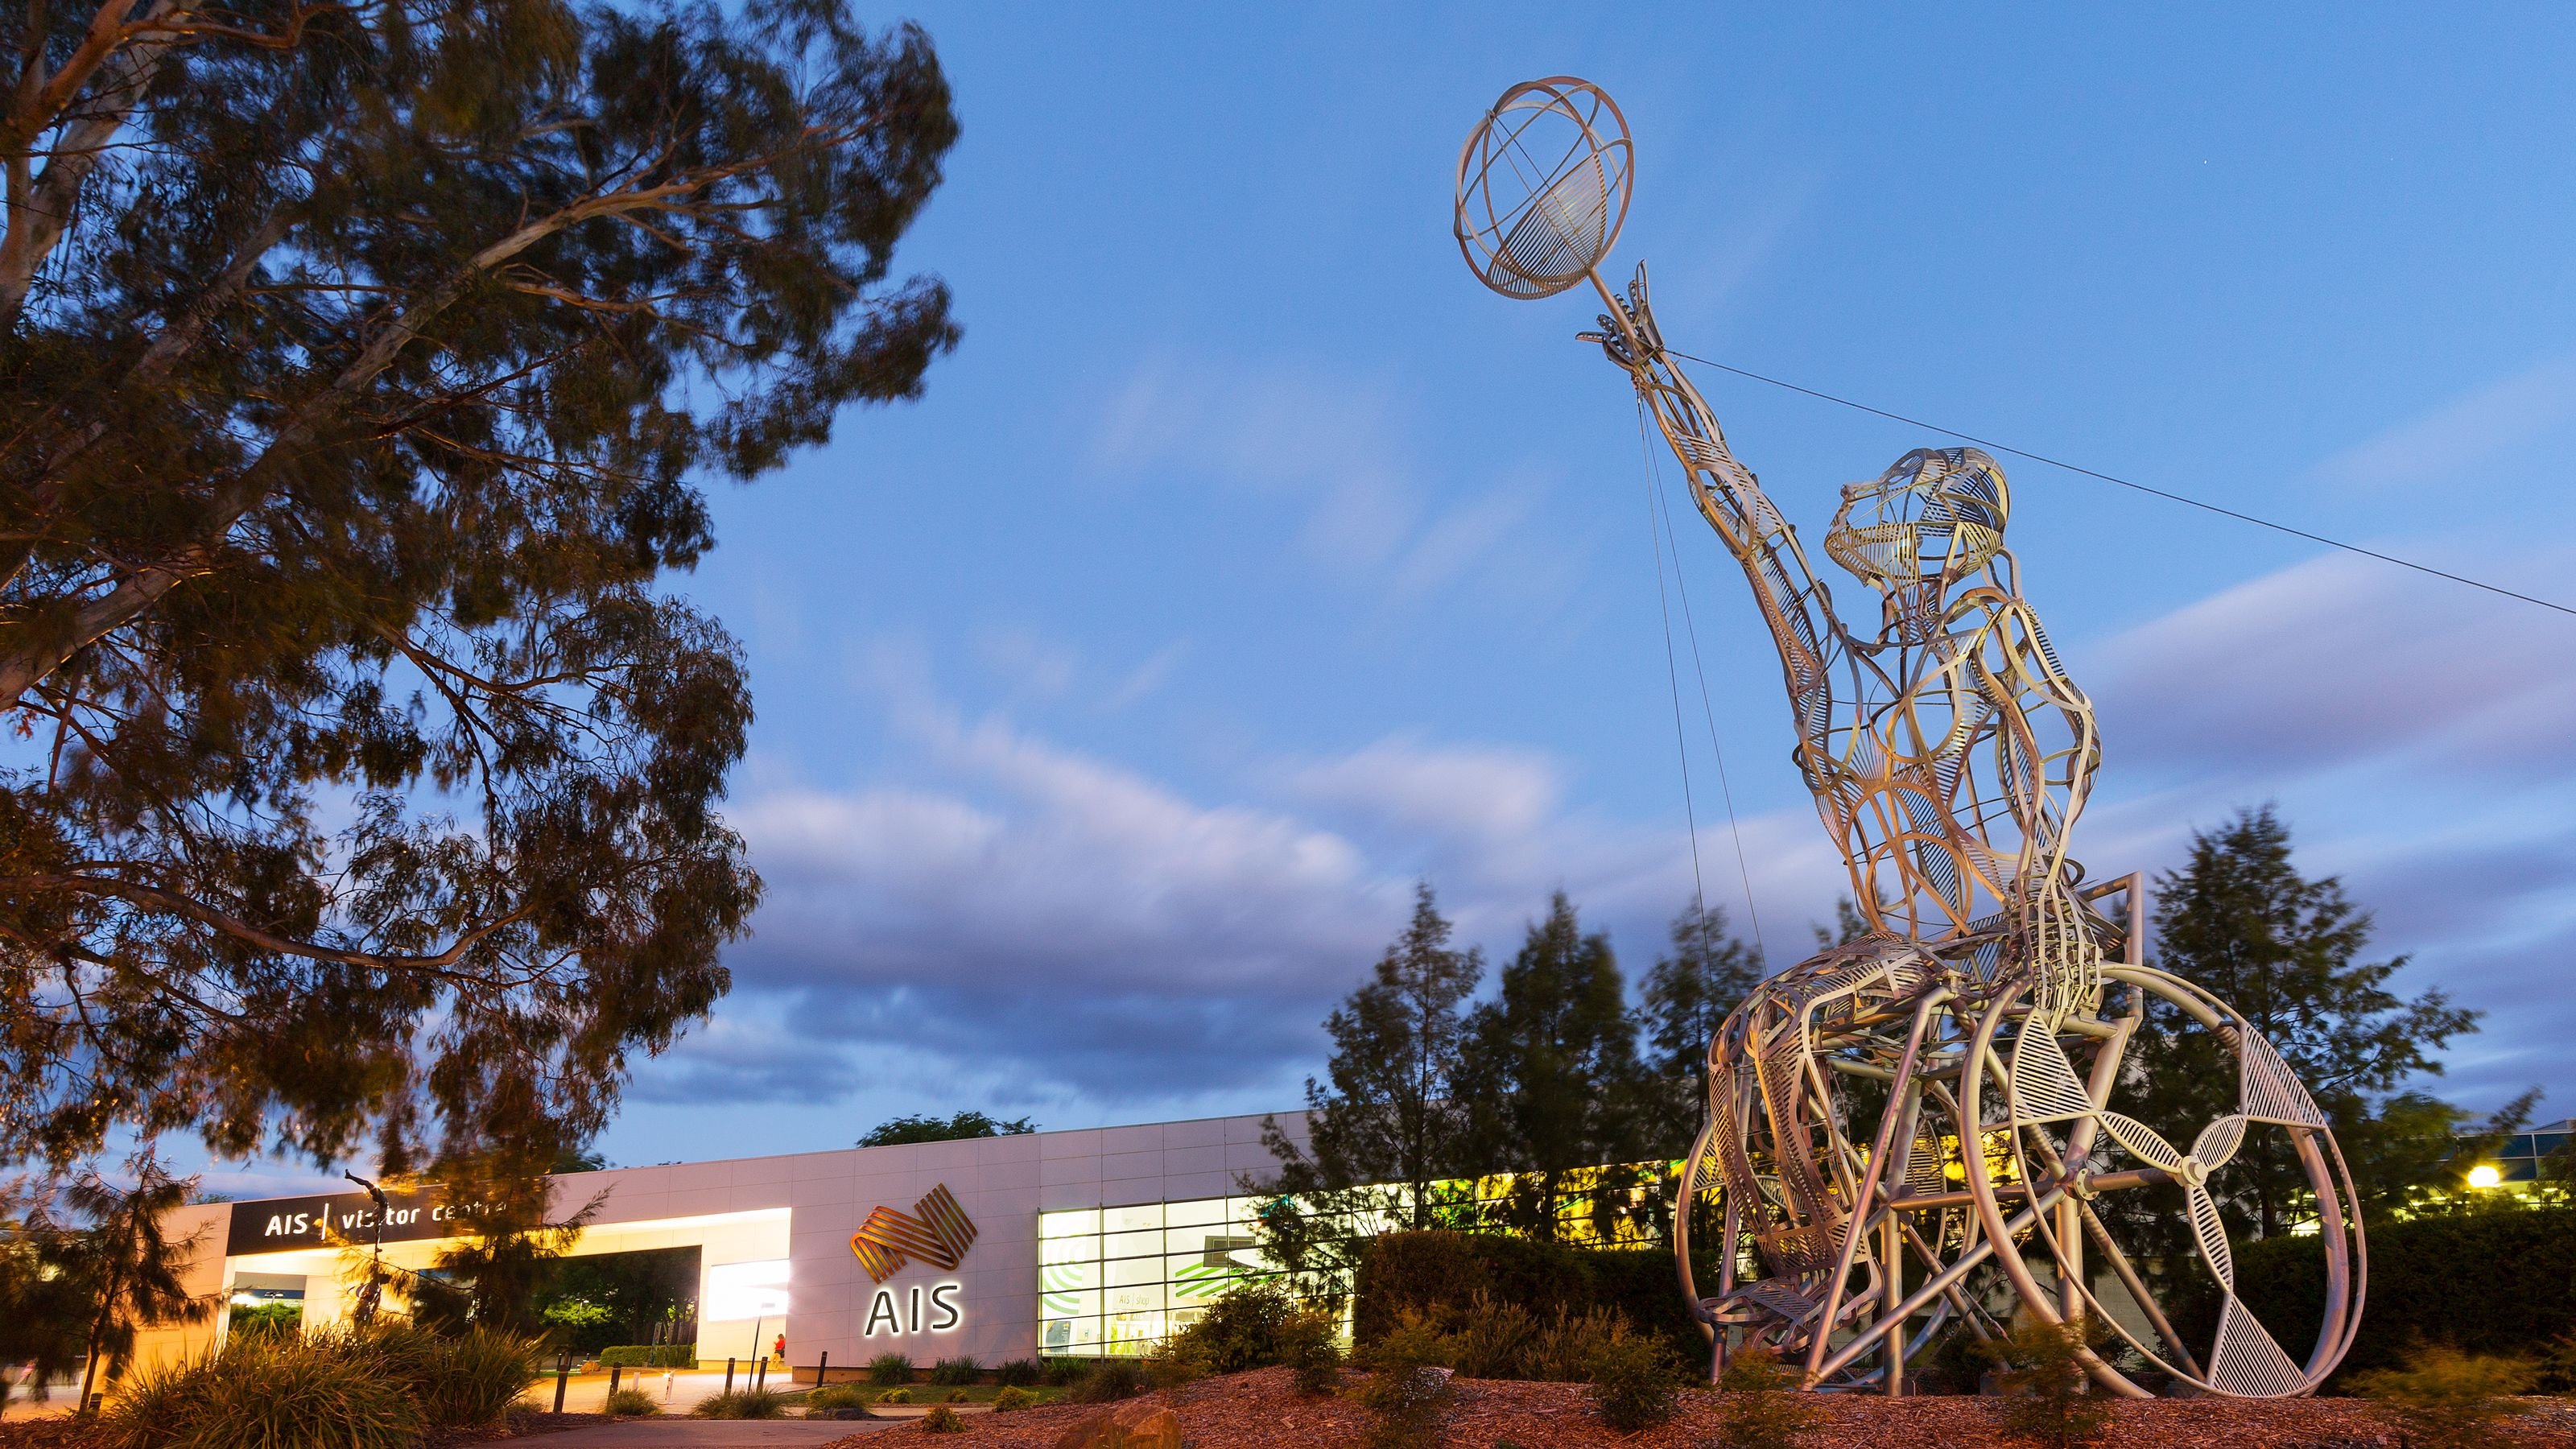 outdoor sculpture at Australian Institute of Sport in Canbera